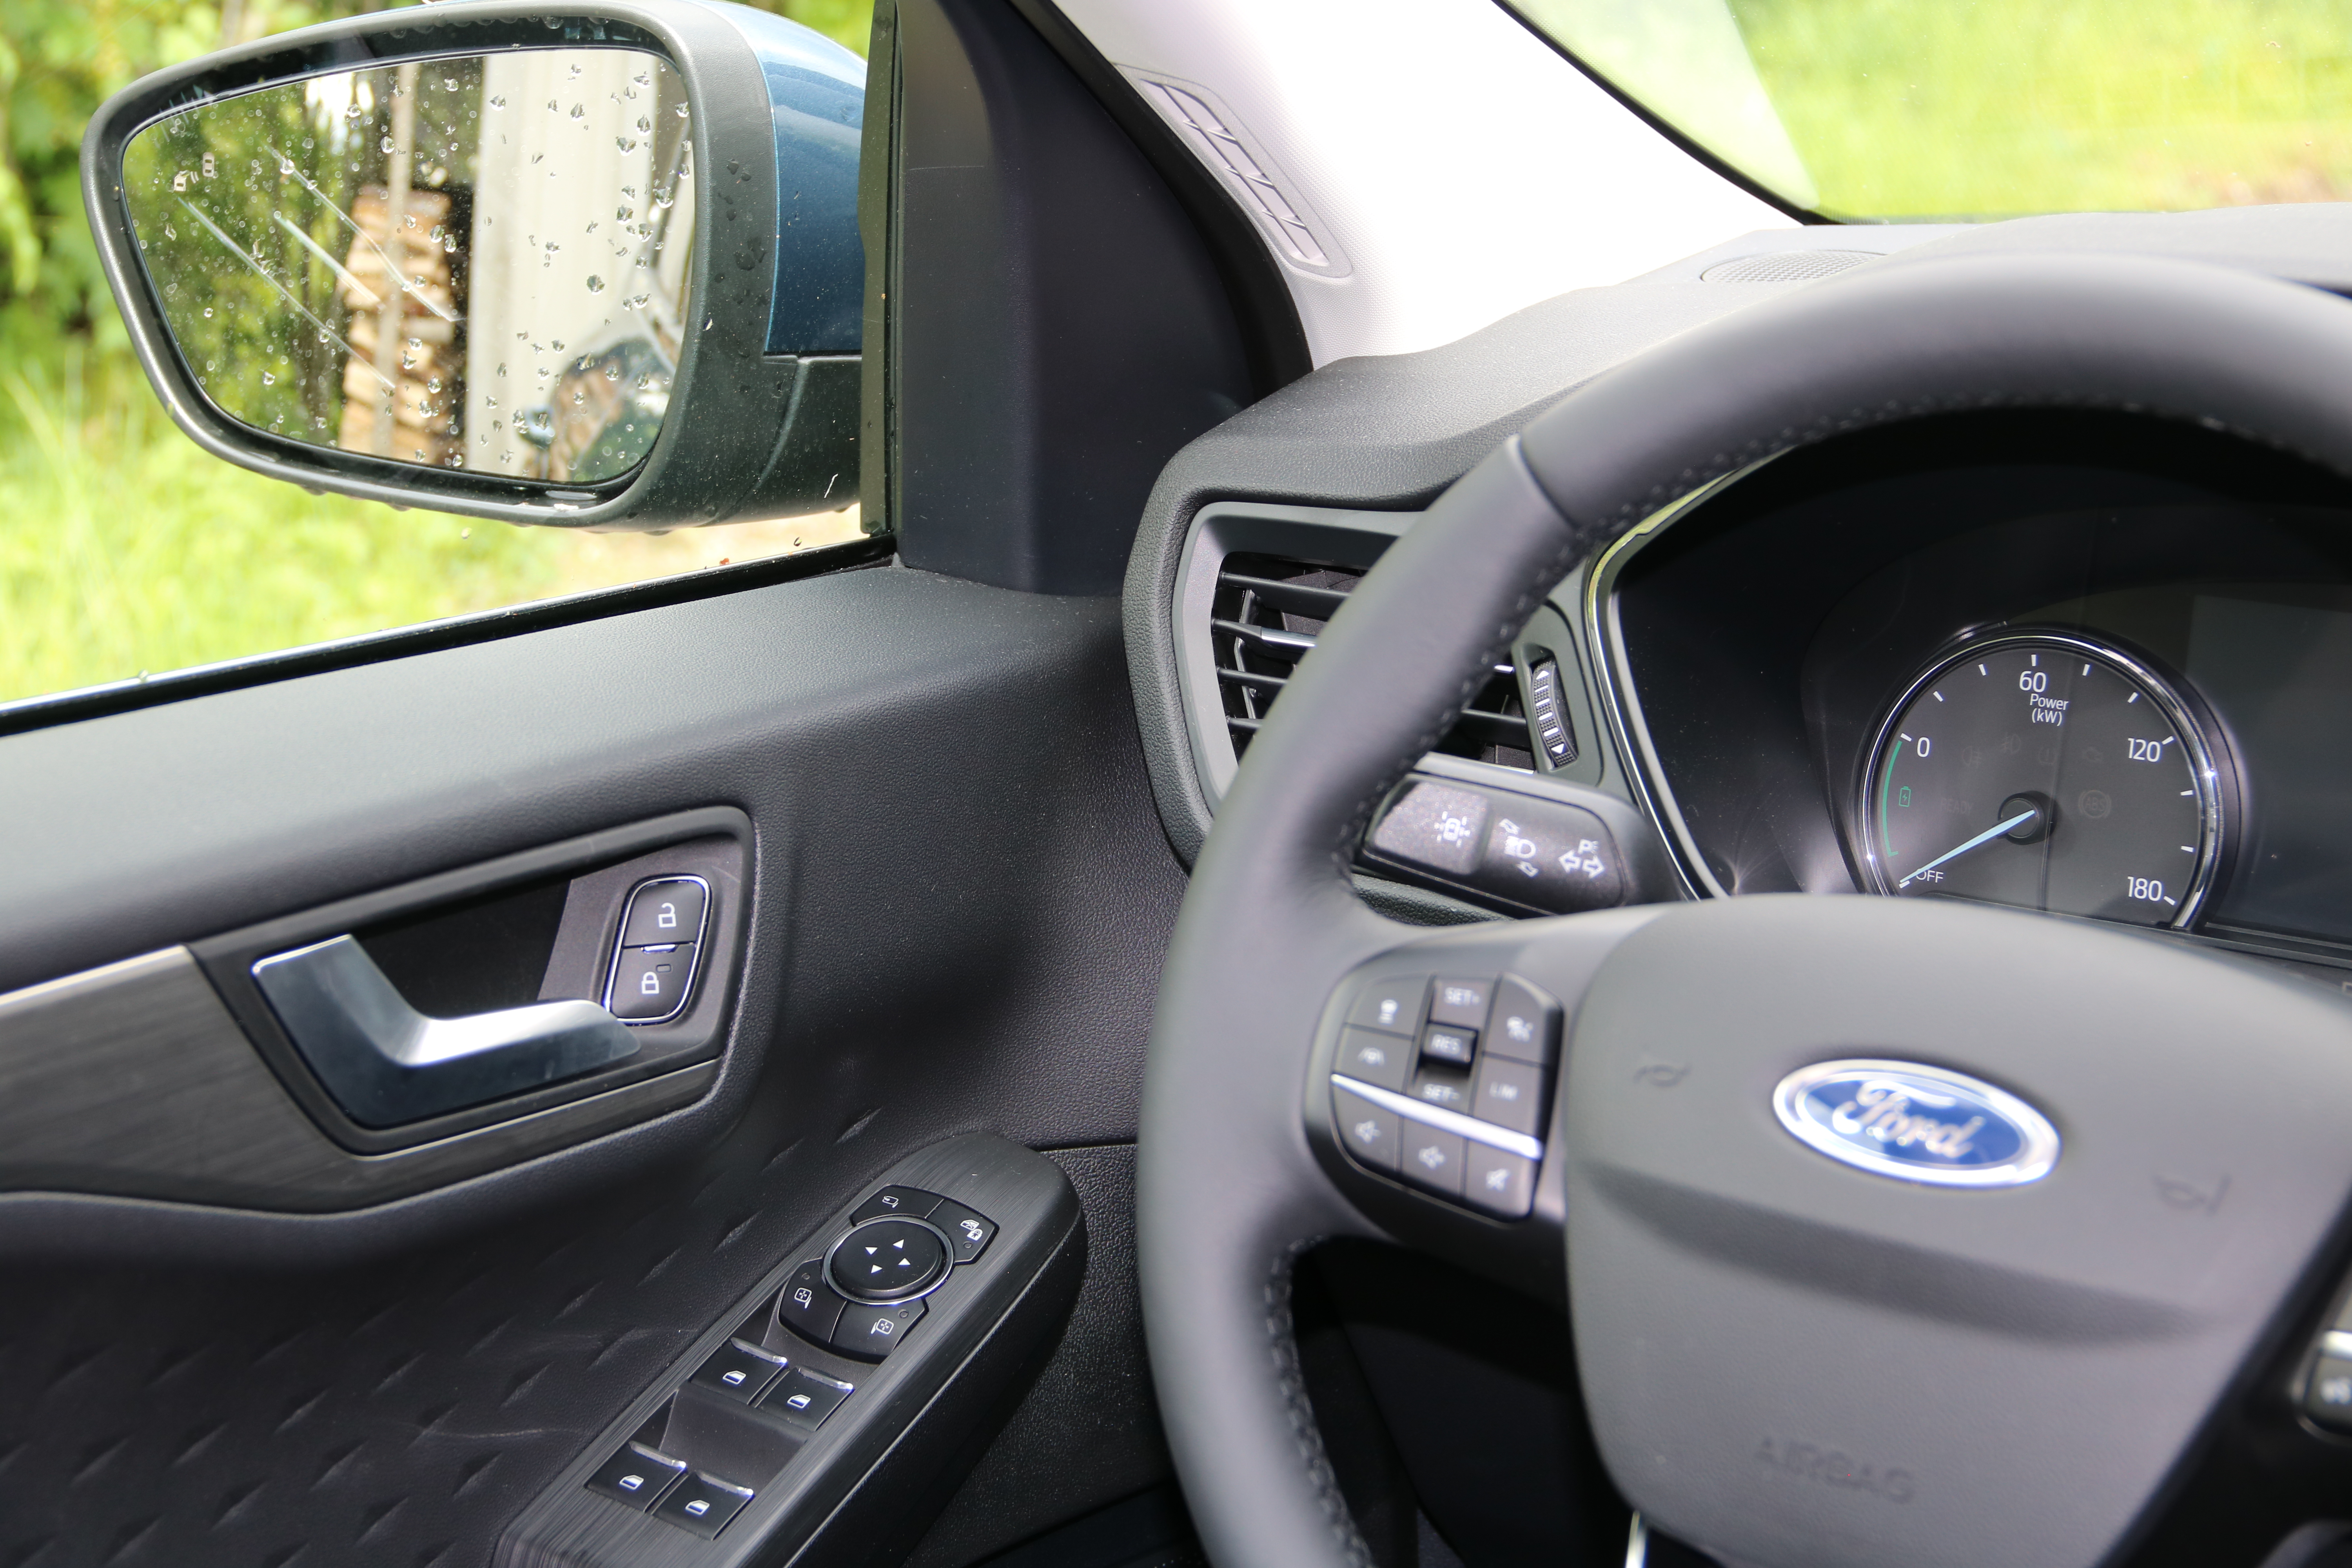 Ford Kuga rear view mirrors and their controls